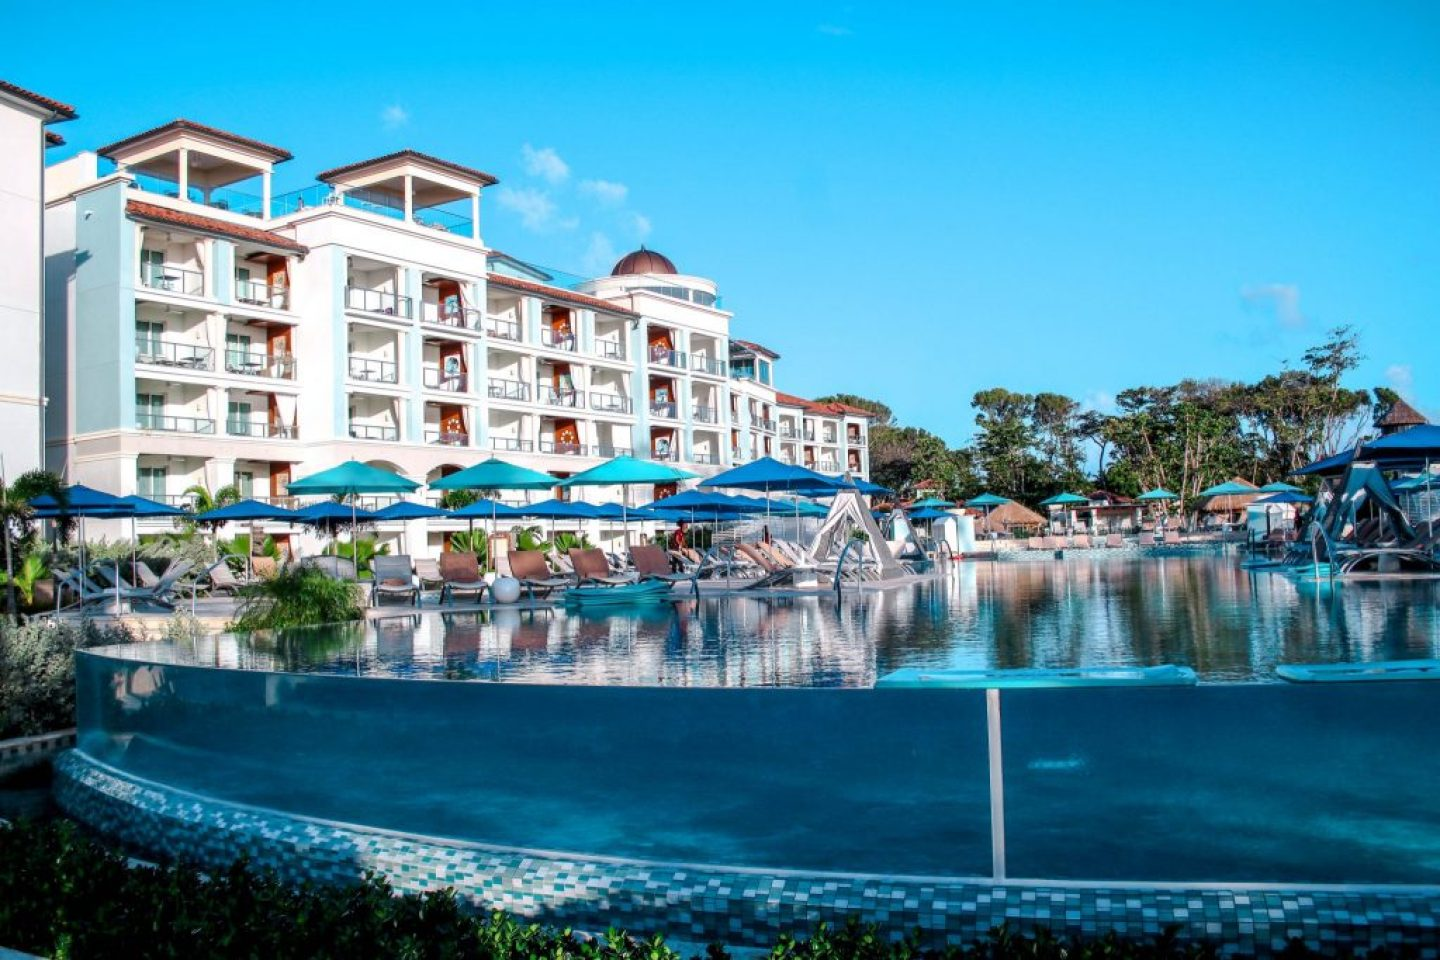 Sandals Royal Barbados is the newest all suite resort in the Sandals chain and the luxury vacation YOU deserve!